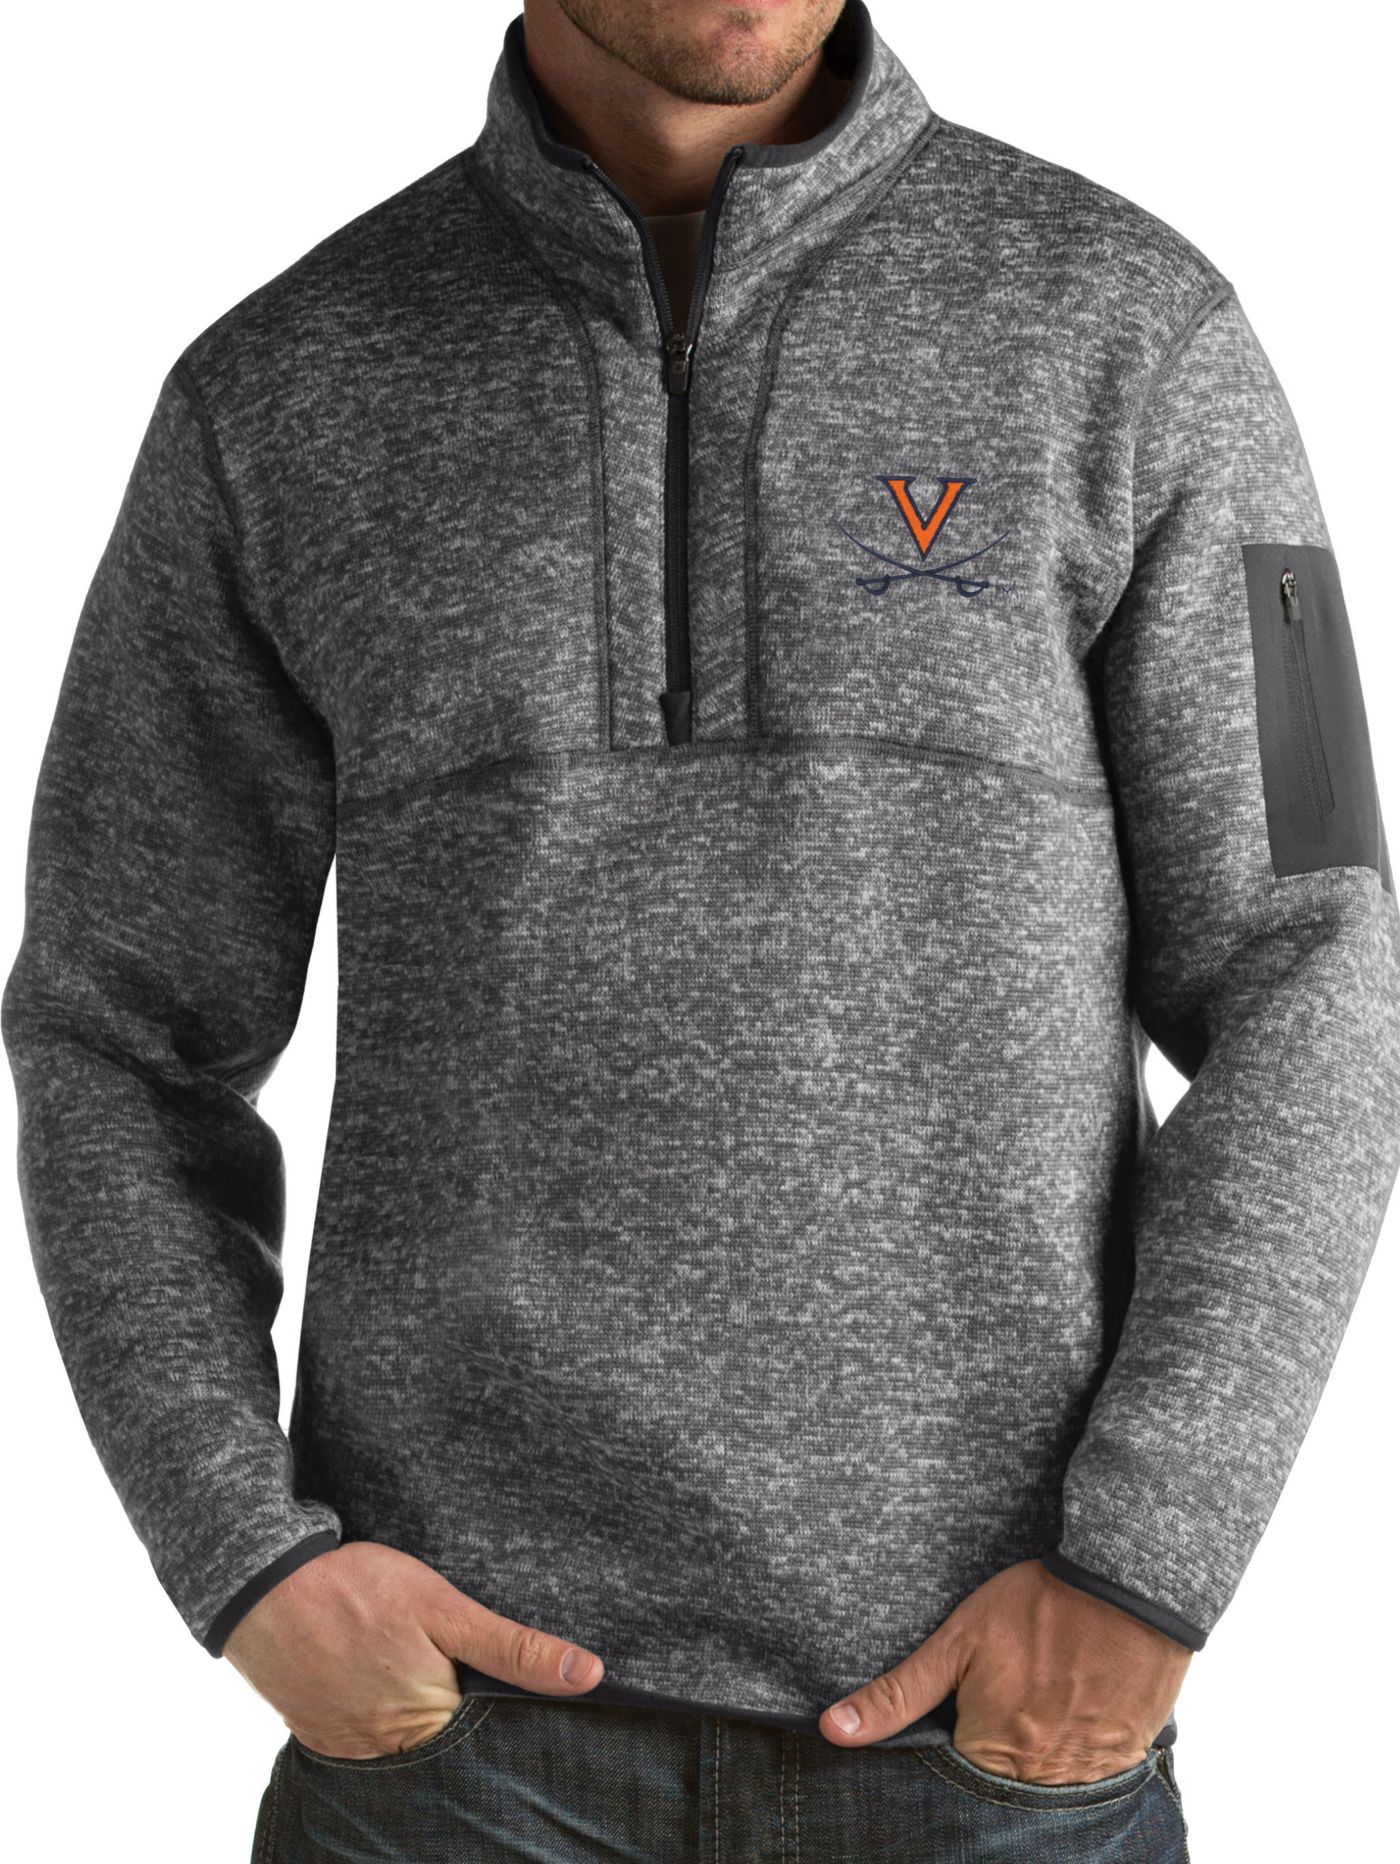 Antigua Men's Virginia Cavaliers Grey Fortune Pullover Jacket